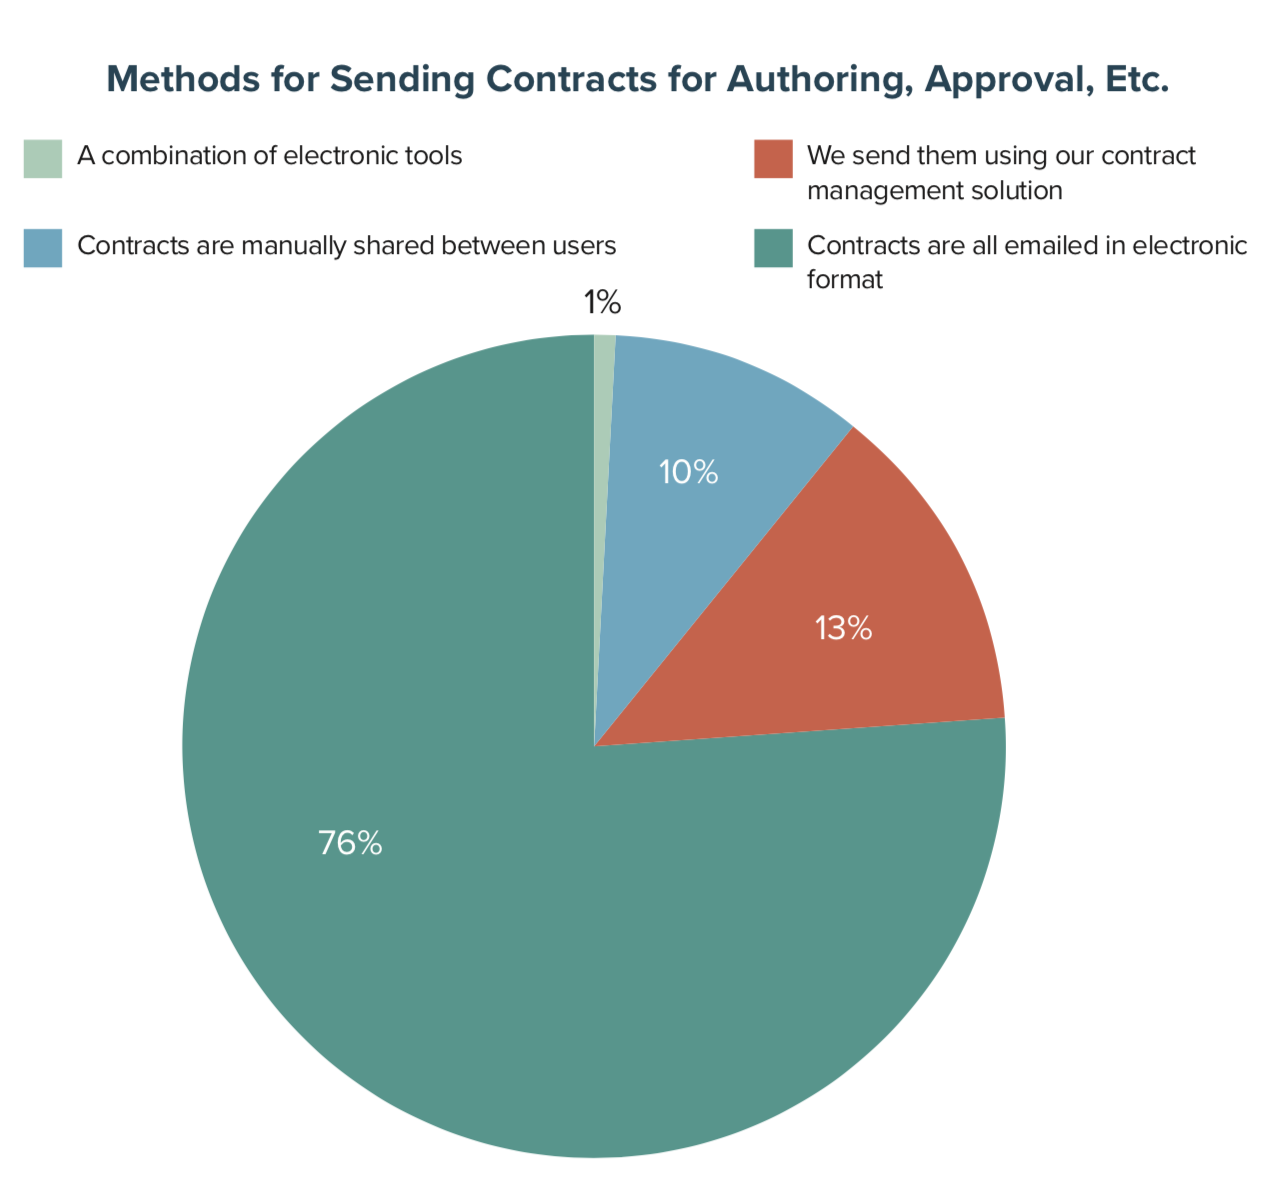 Methods for Sending Contracts for Authoring, Approval, Etc.